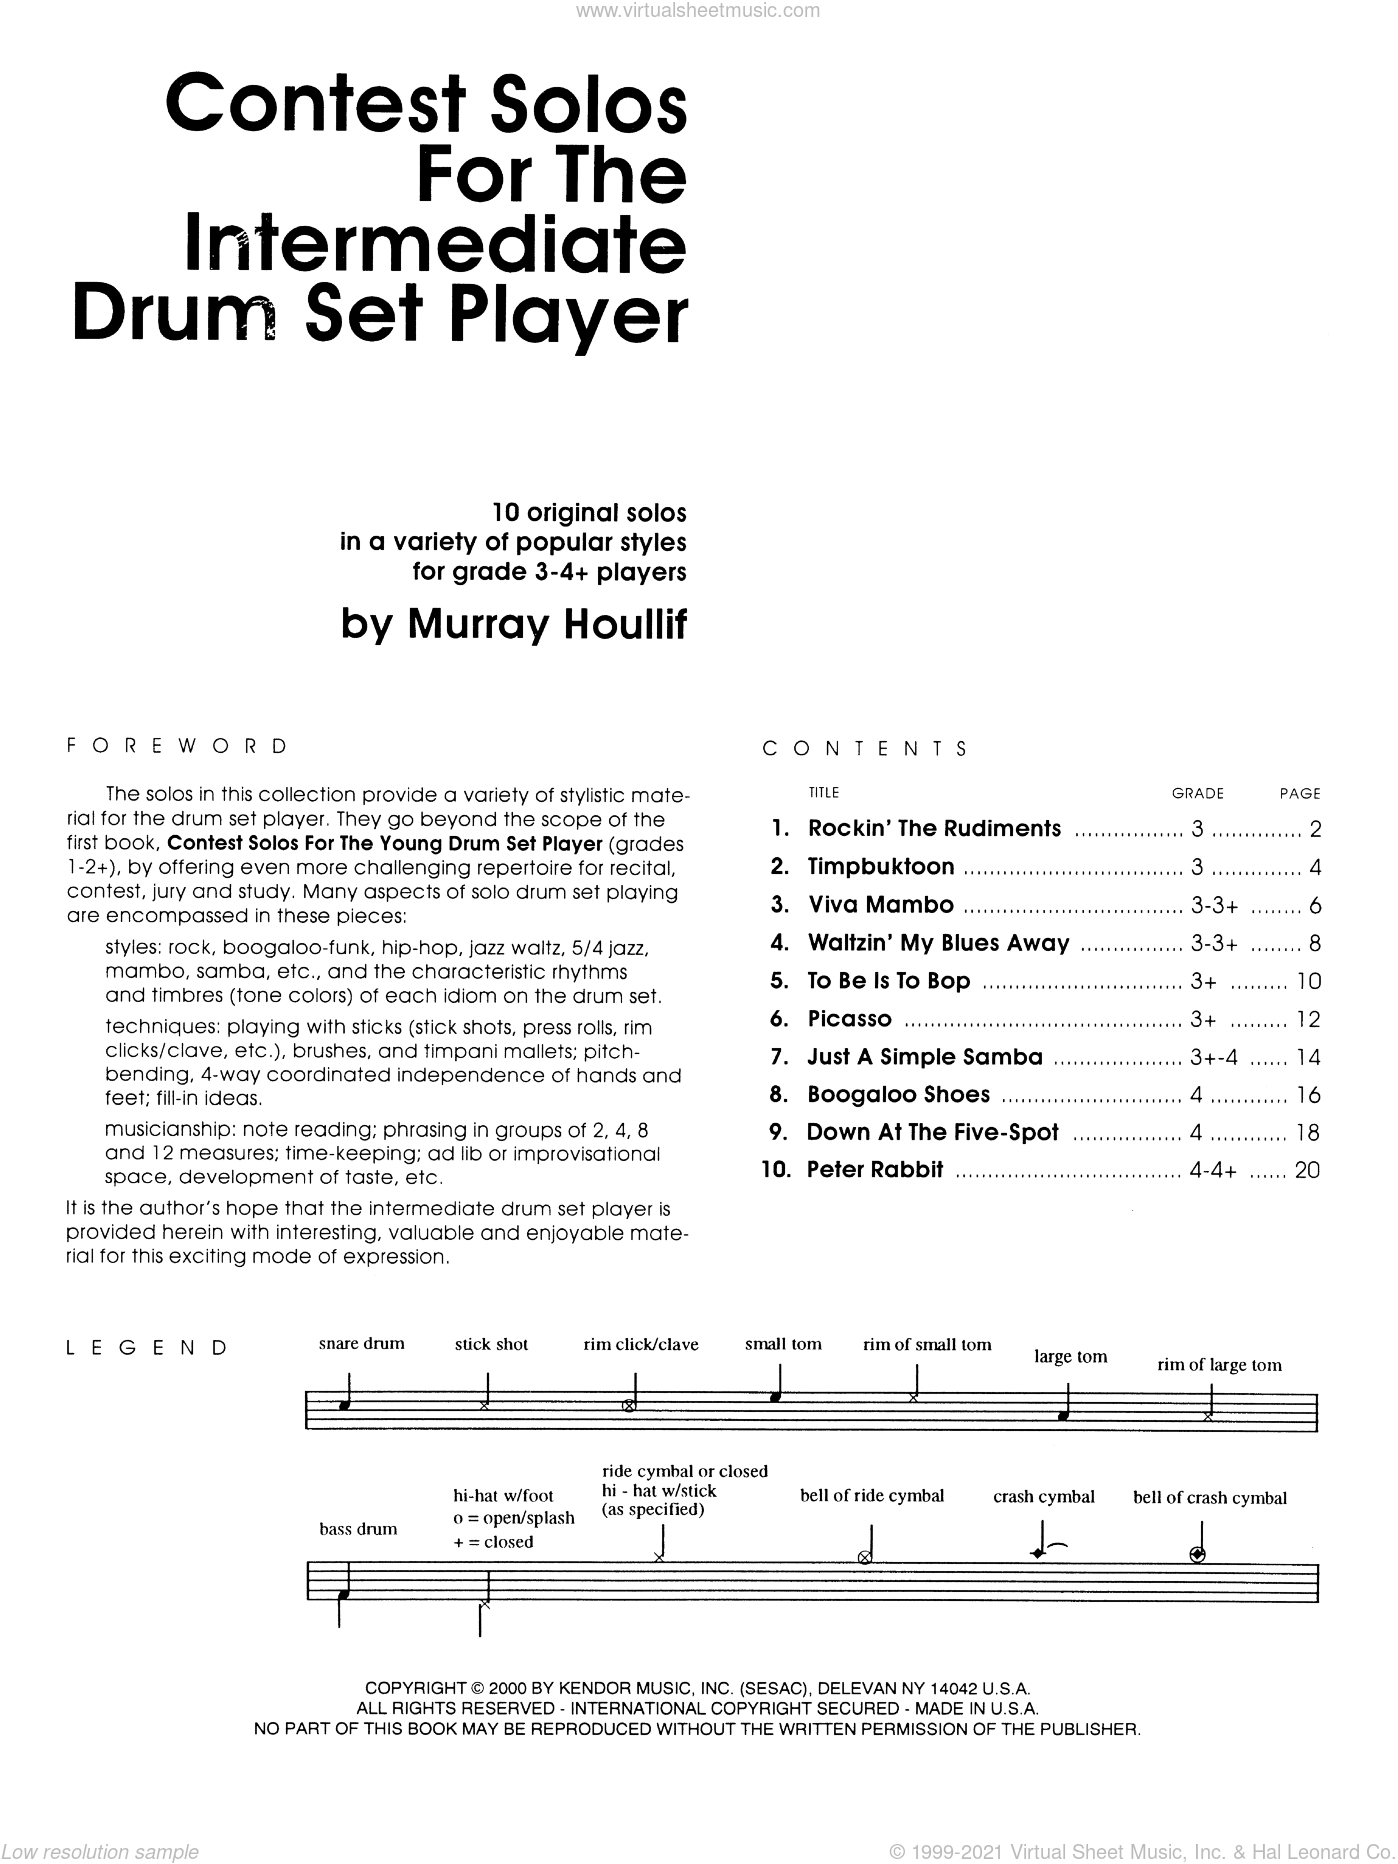 Contest Solos For The Intermediate Drum Set Player sheet music for percussions by Houllif, classical score, intermediate percussions. Score Image Preview.